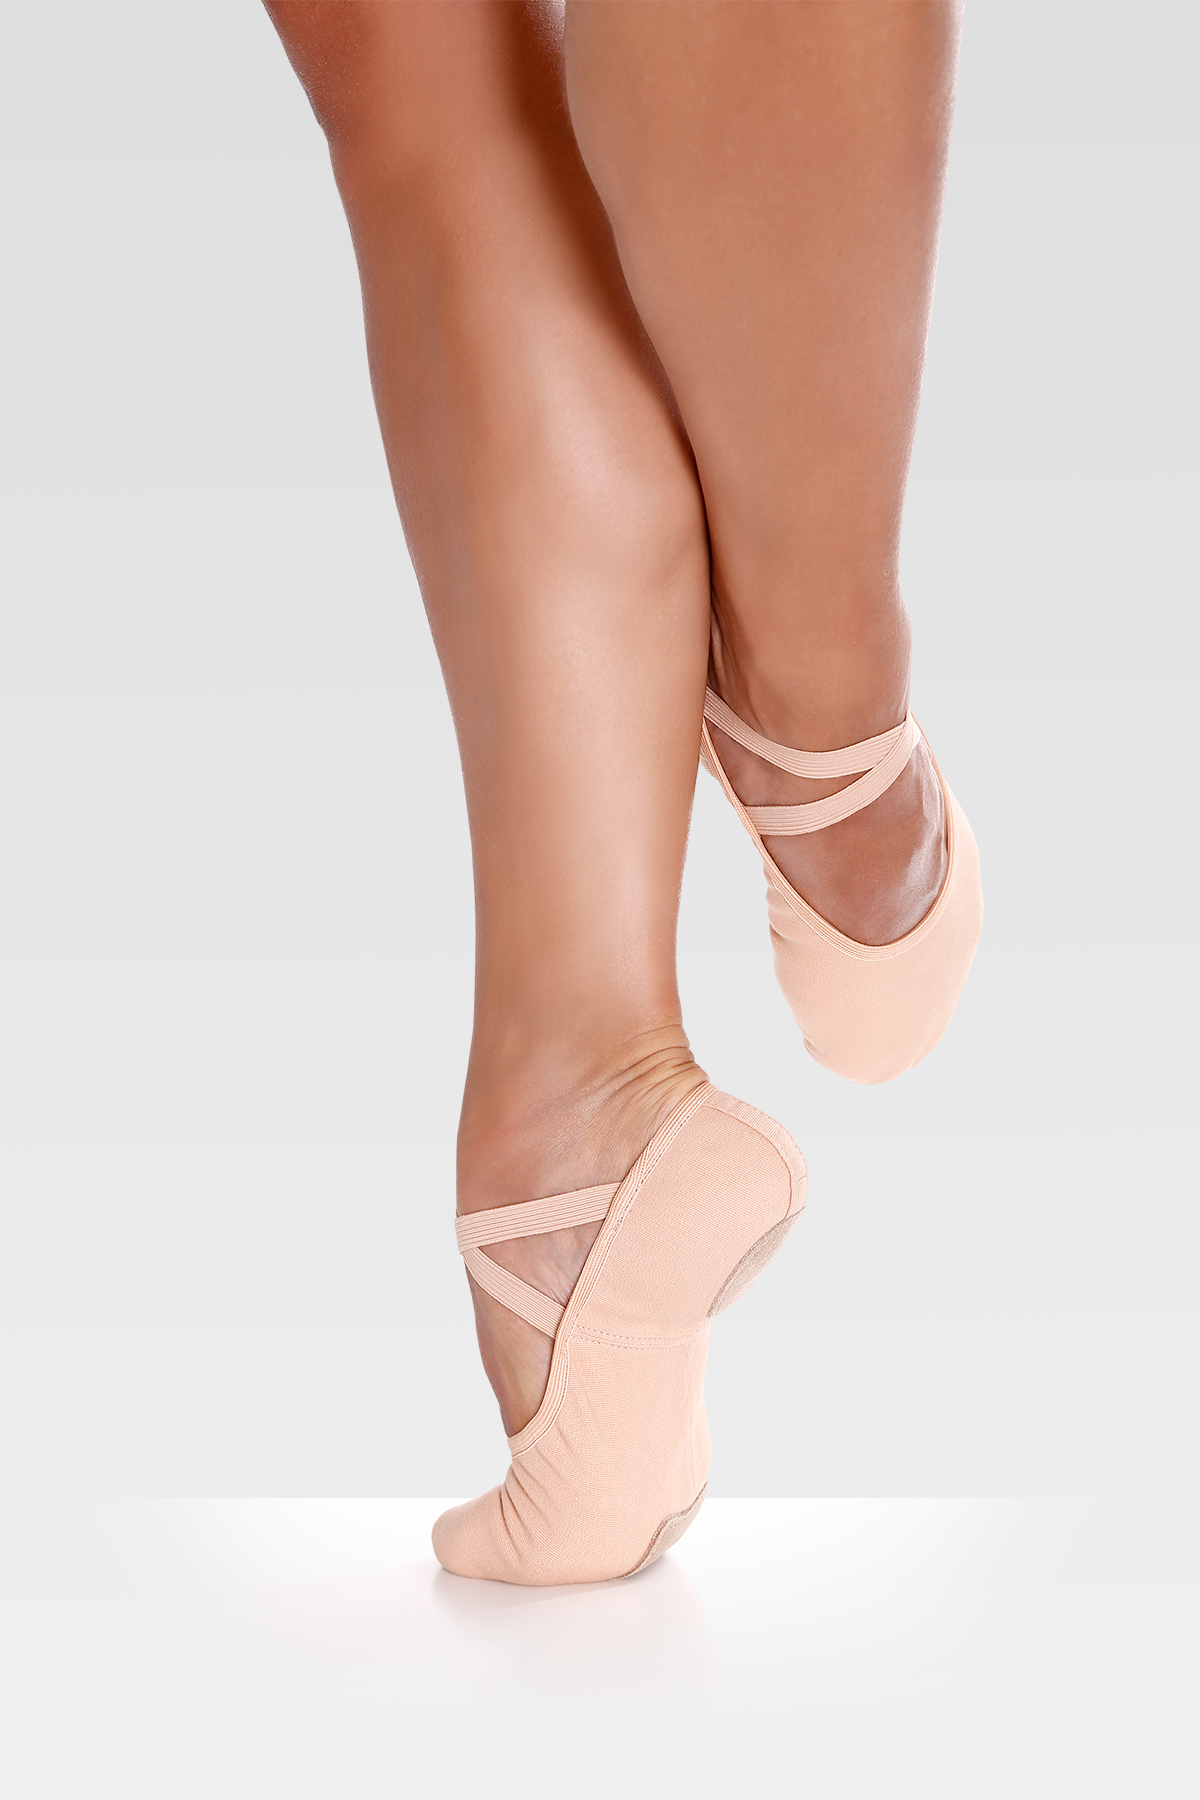 So Danca Bliss and Bali Ballet Shoes